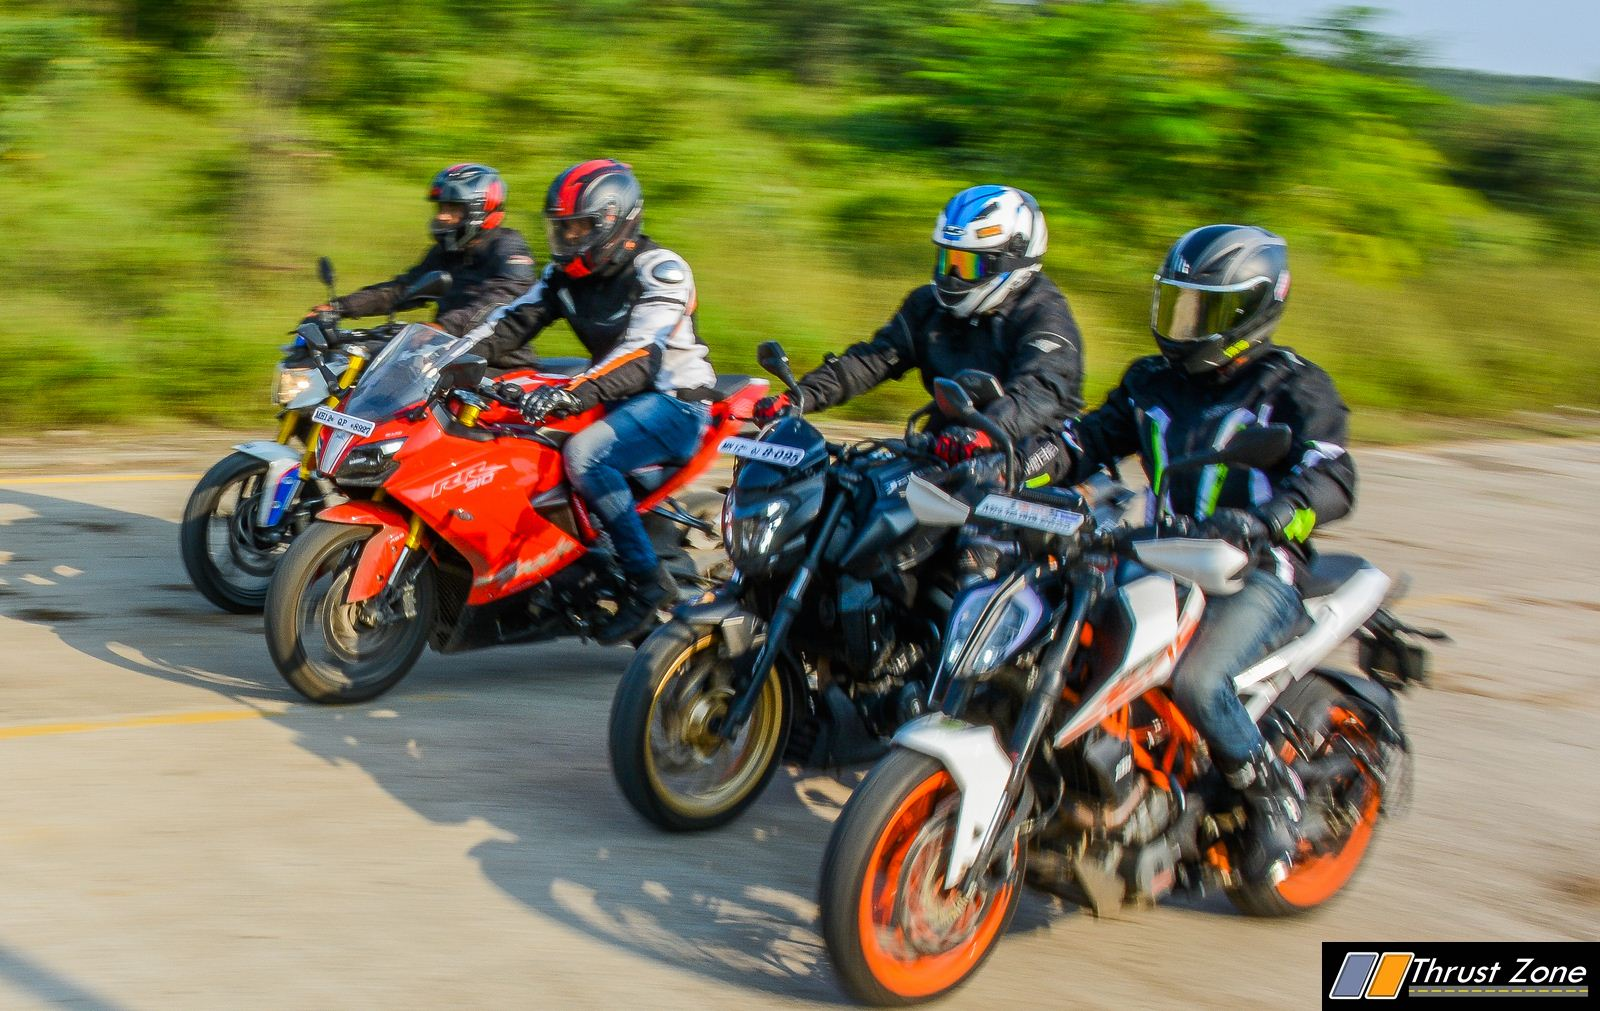 BMW G310R vs Duke 390 vs Dominar 400 vs Apache RR310 Review-21